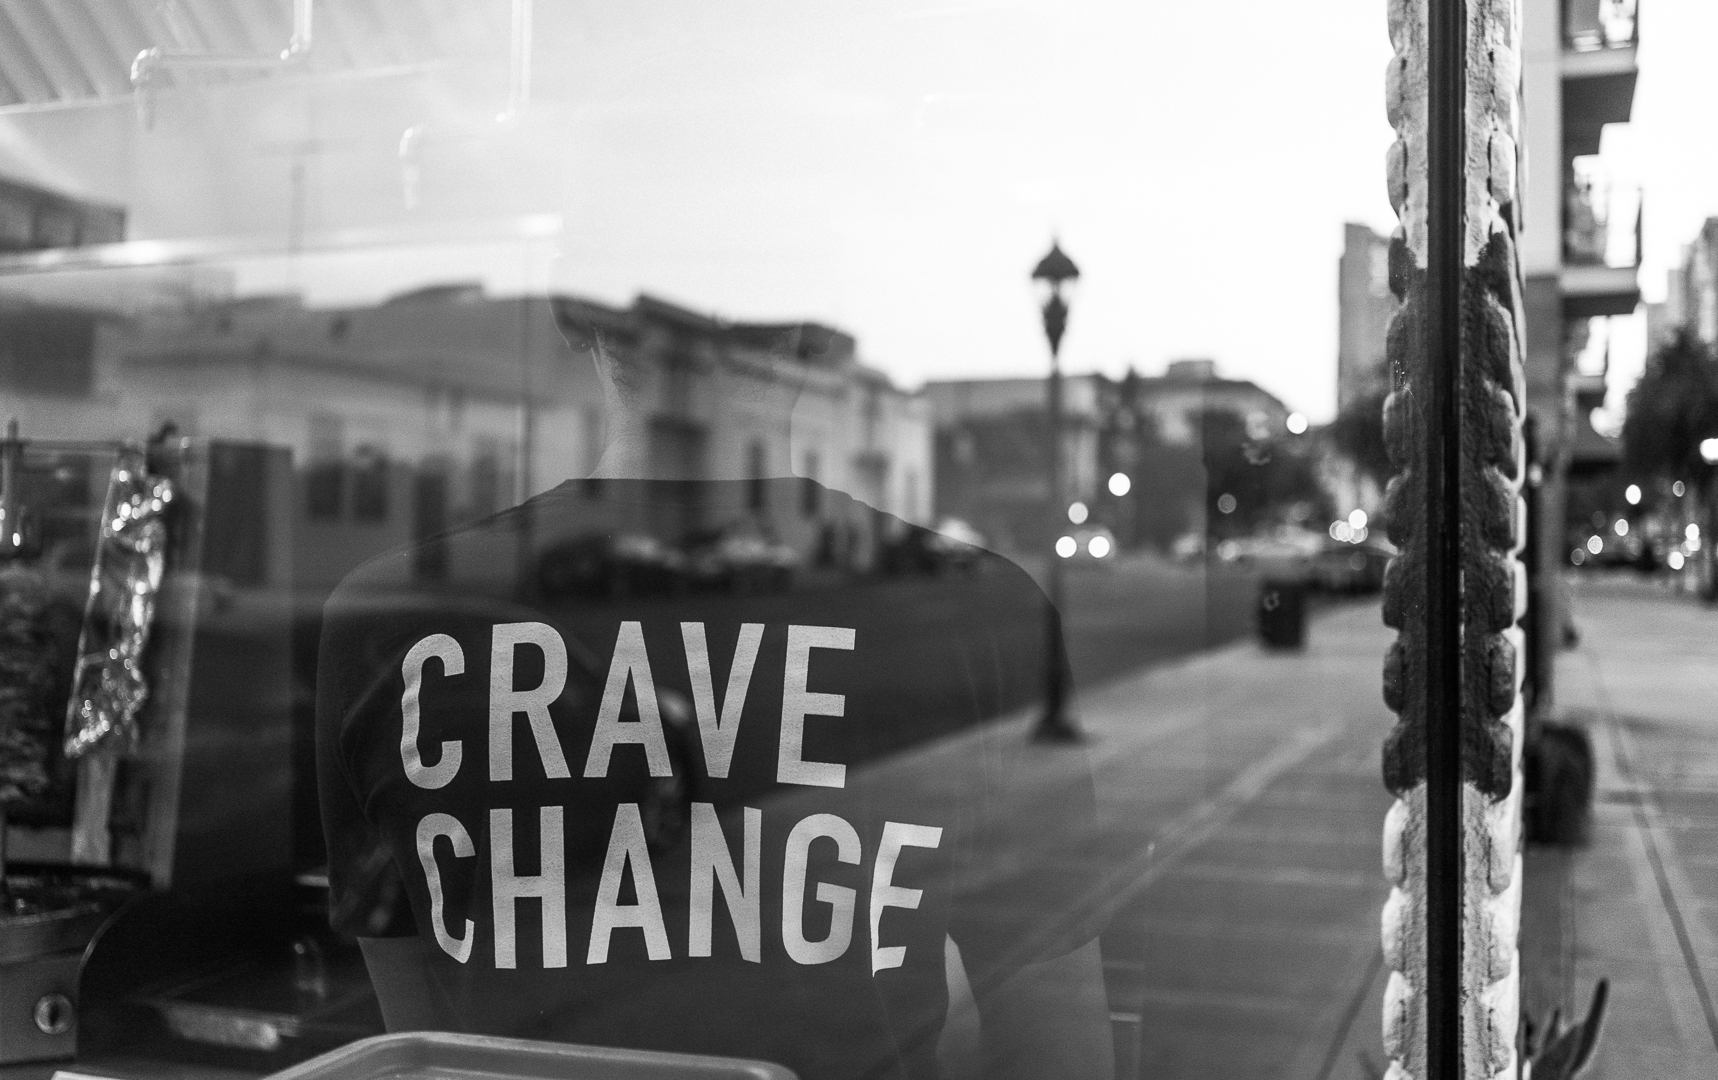 CRAVE CHANGE - Restaurant and BTS photography commissioned by The Kebab Shop as part of a rebranding campaign. Content was used for website and social media. See the videohere.| San Diego, CA.